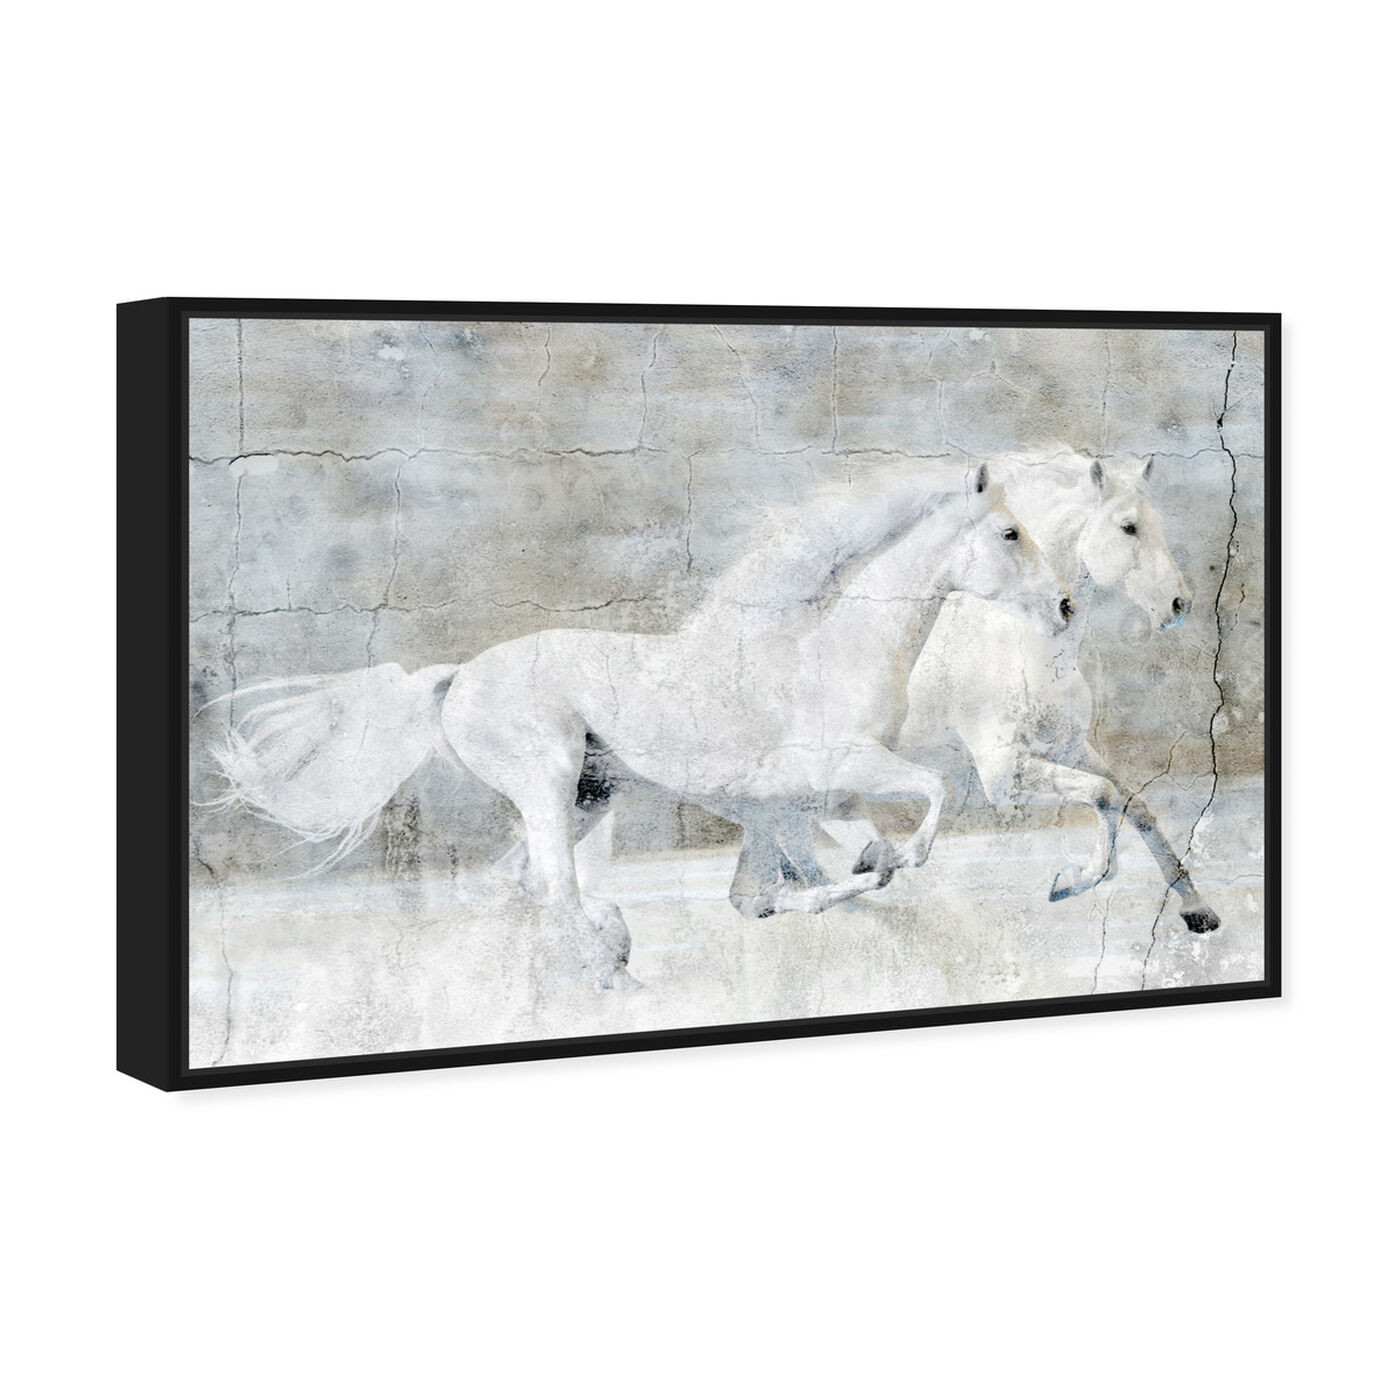 Angled view of Running Wild featuring animals and farm animals art.